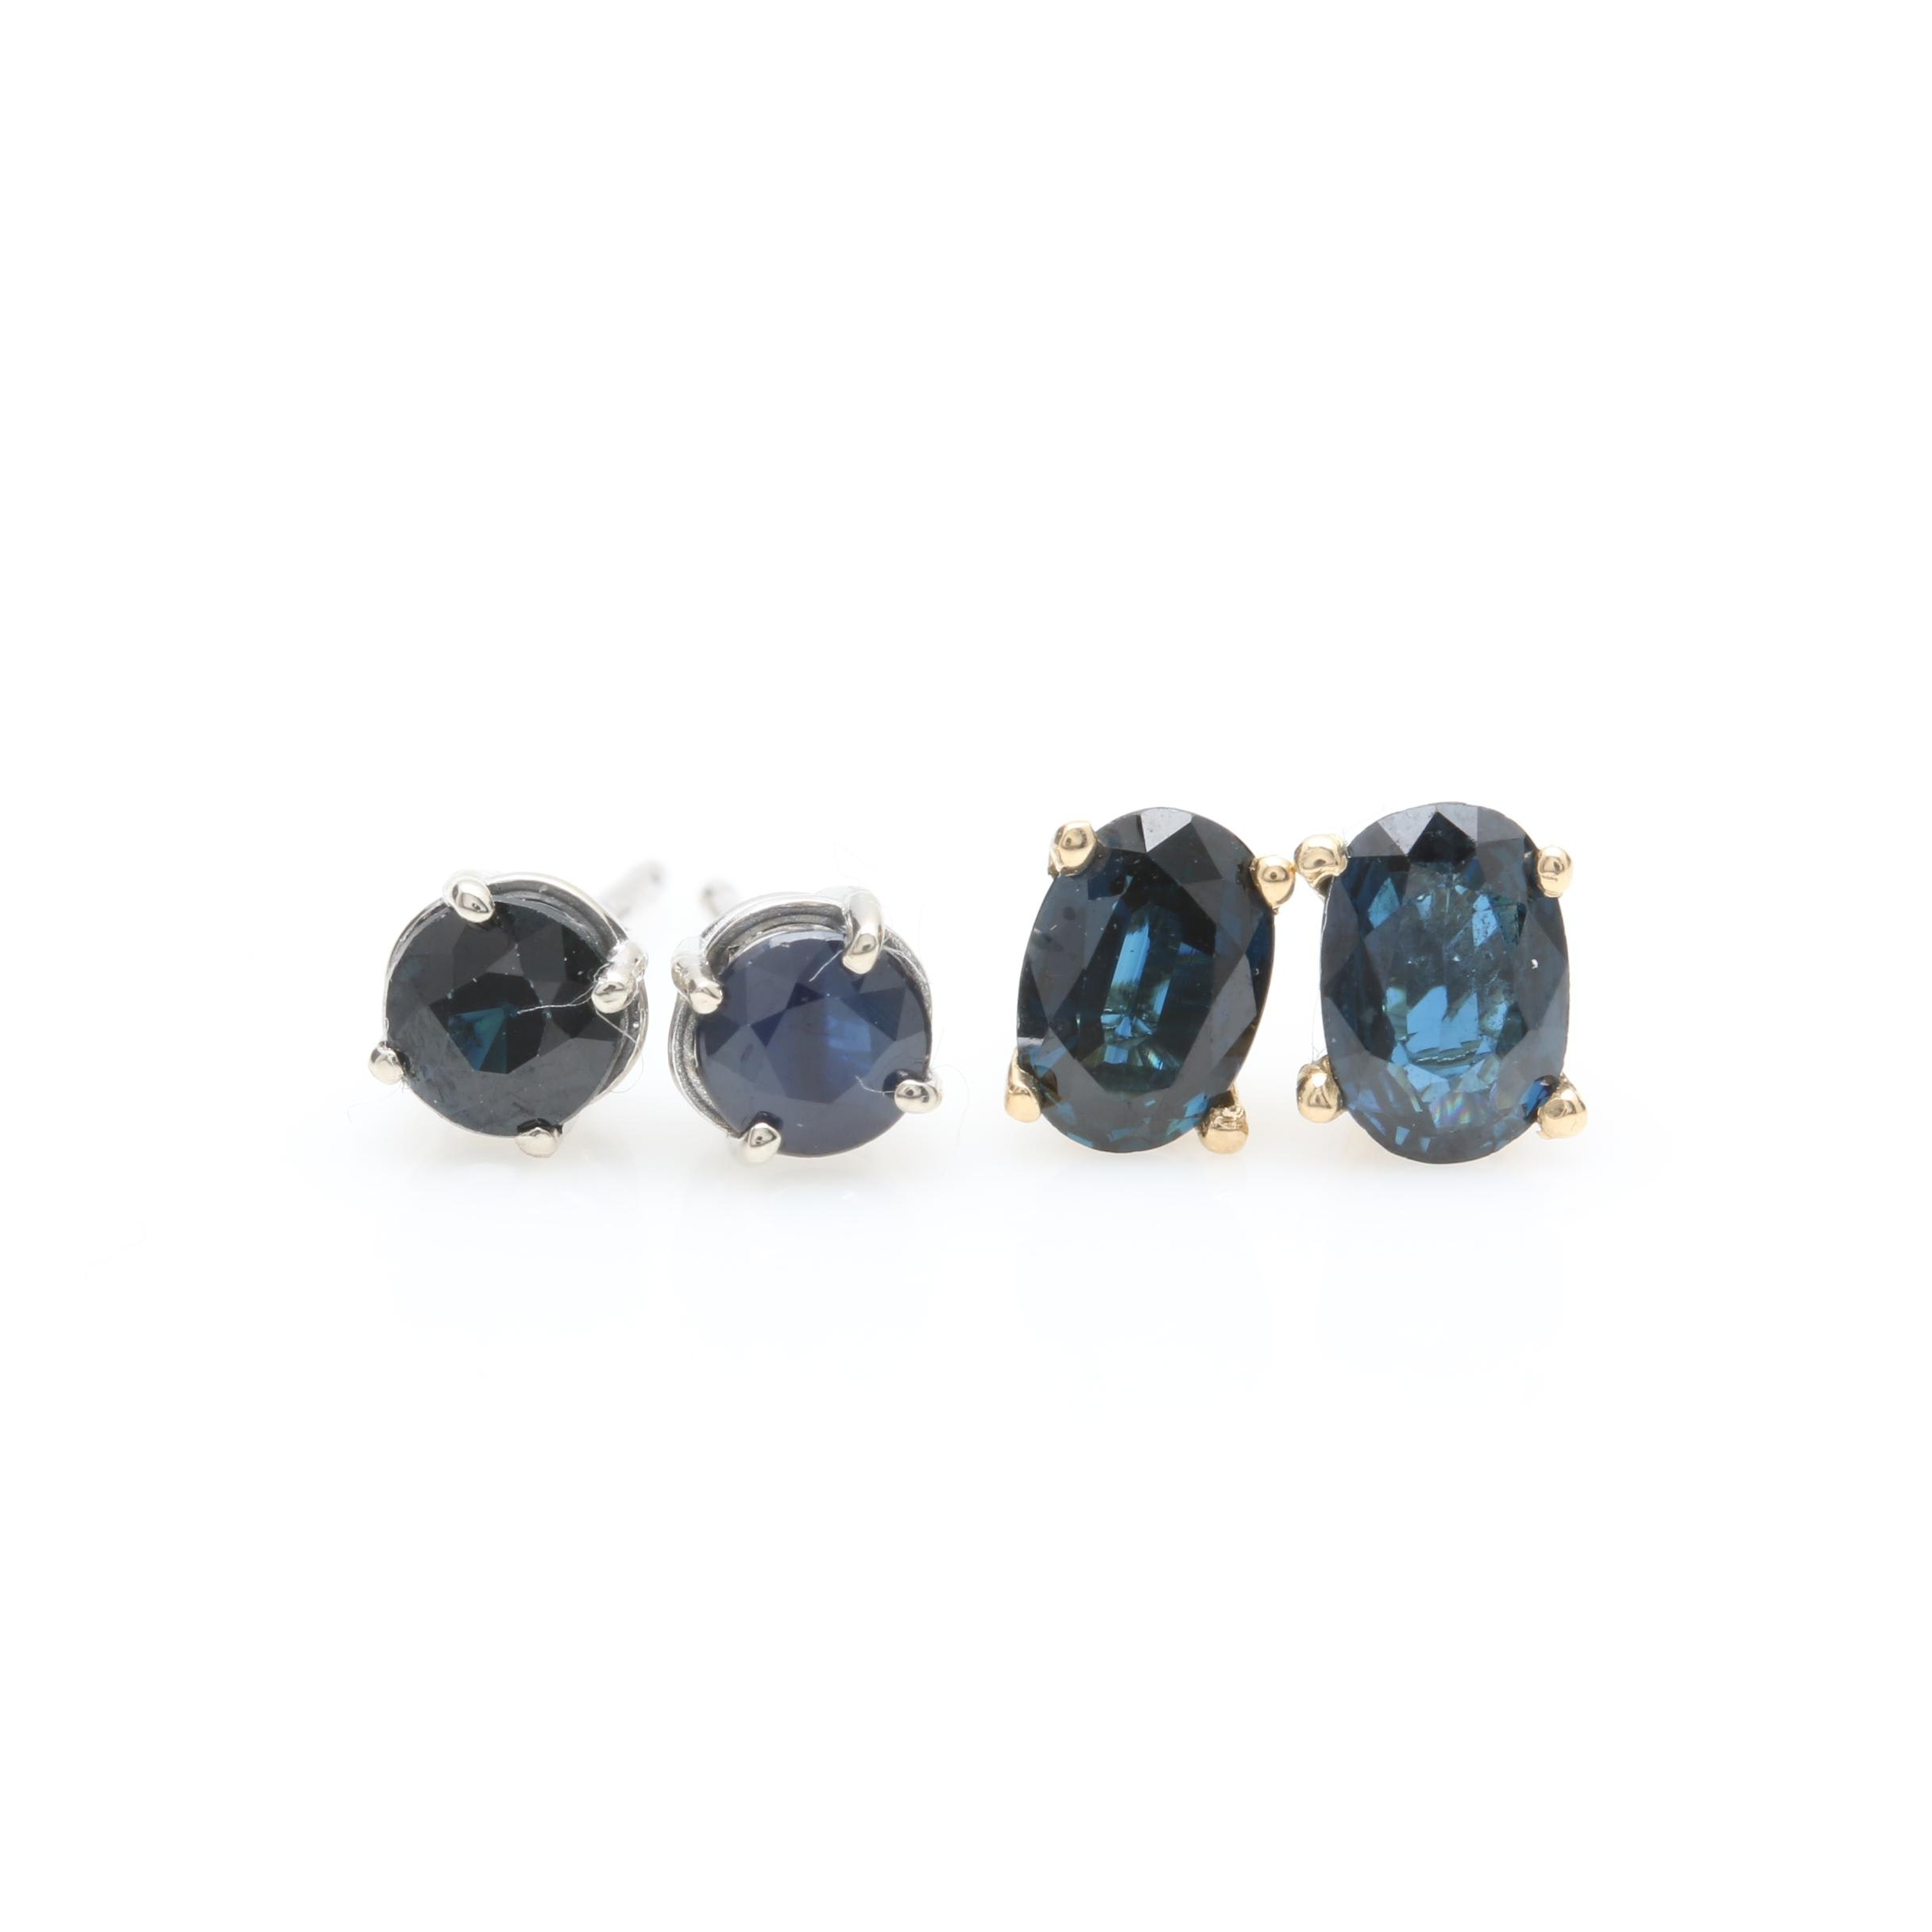 14K Yellow and White Gold Sapphire Stud Earring Selection